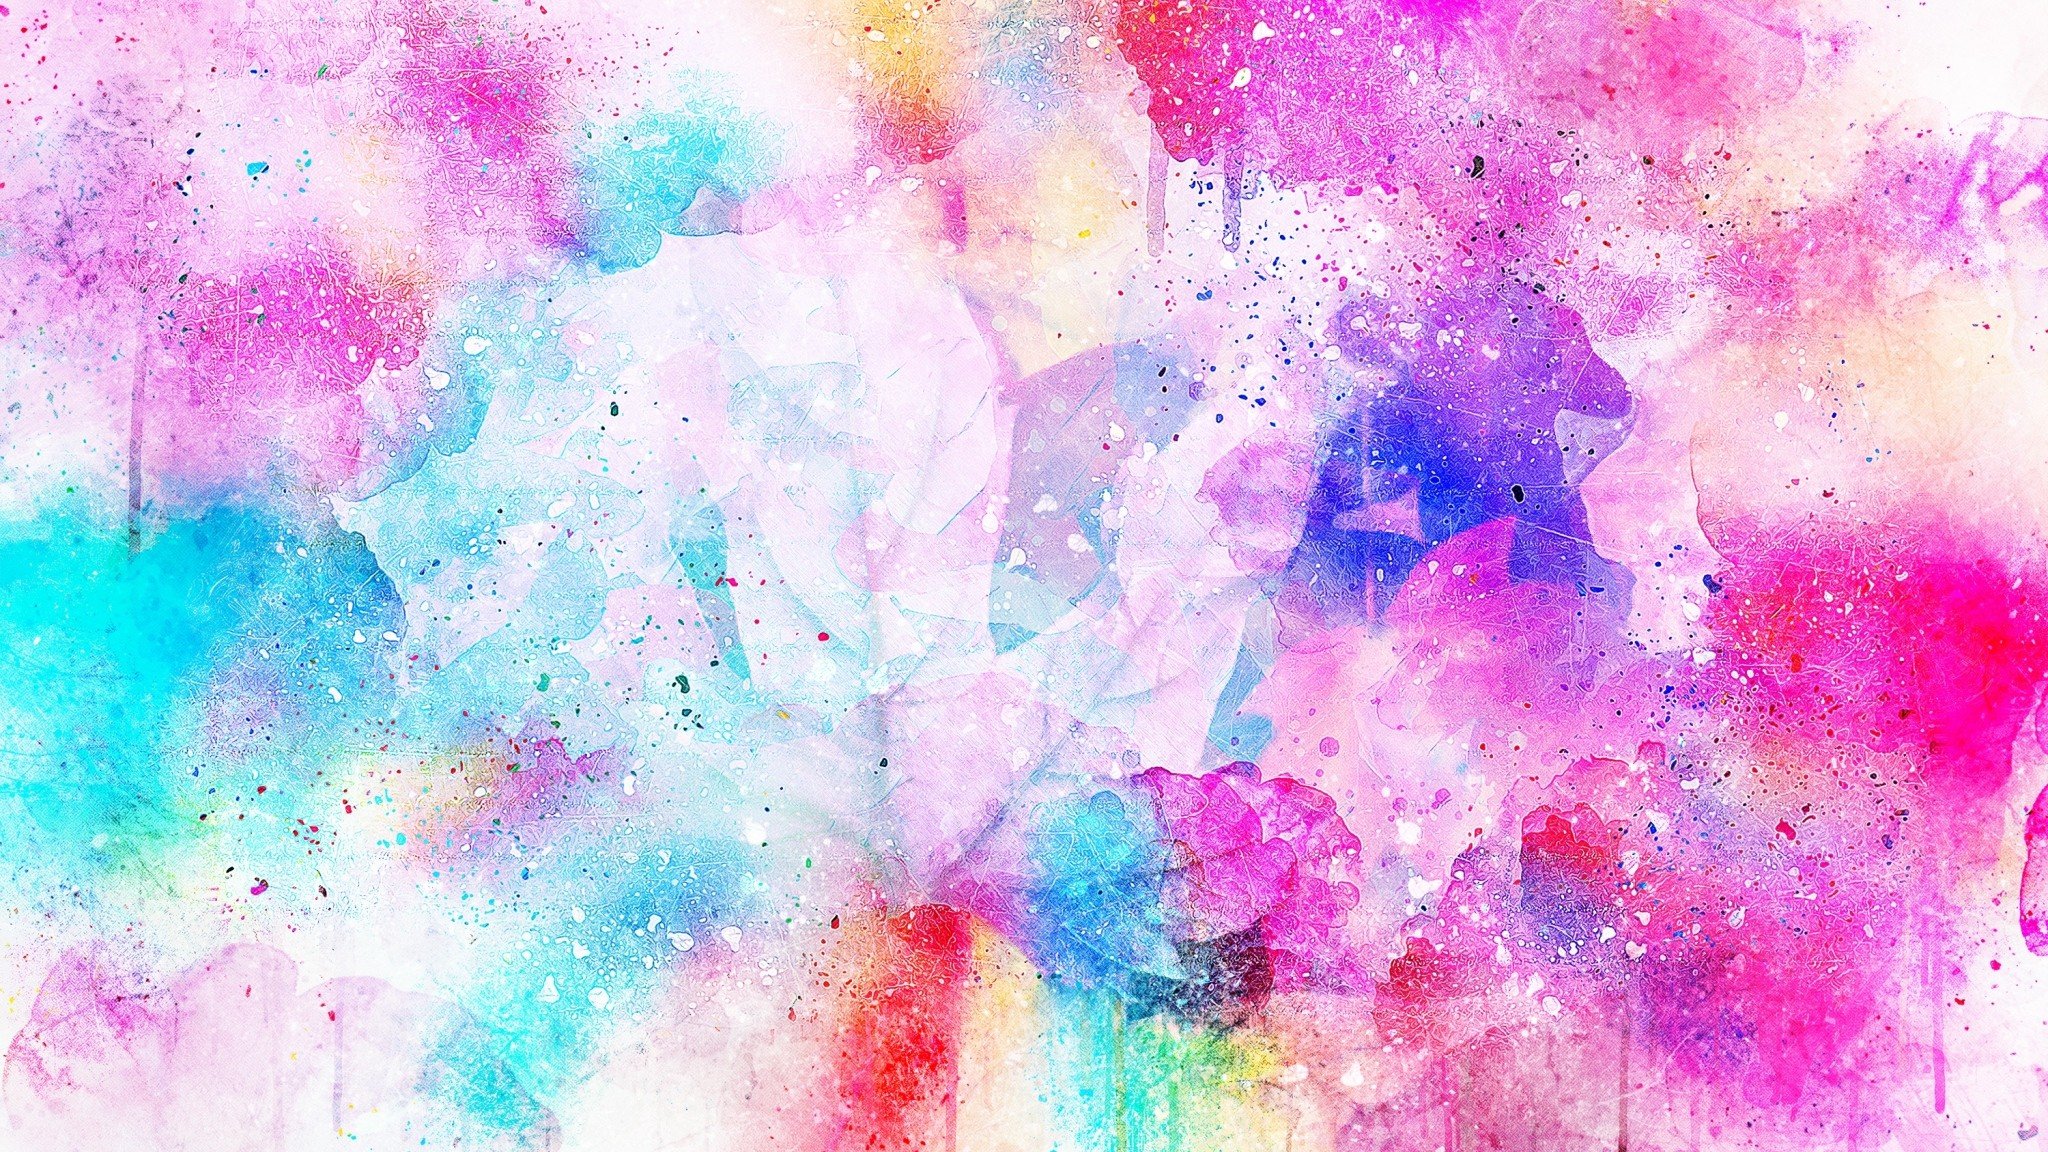 Abstract Water Painting Colors Samsung Galaxy S5 Hd: Bright Pink Wallpaper (48+ Images